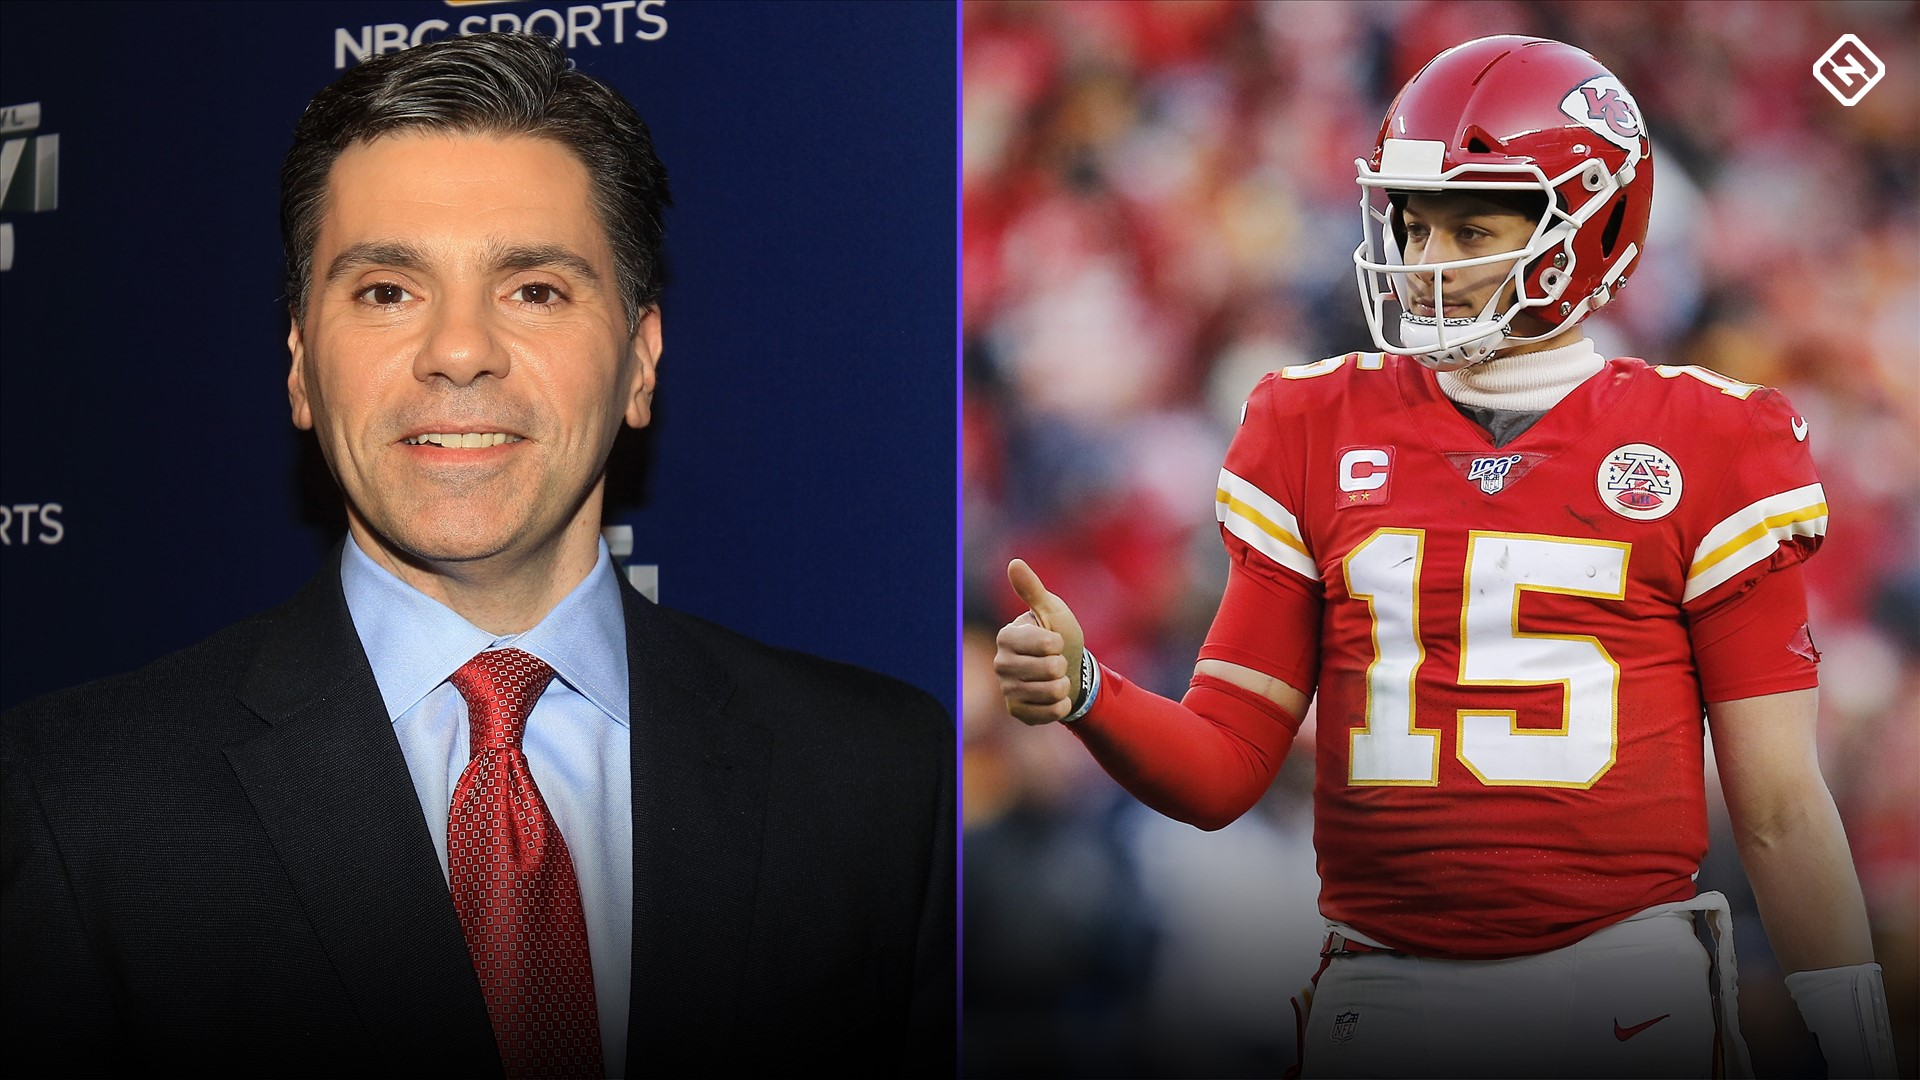 Mike Florio's take on risking penalties to 'send a message' to Patrick Mahomes is dumb at best